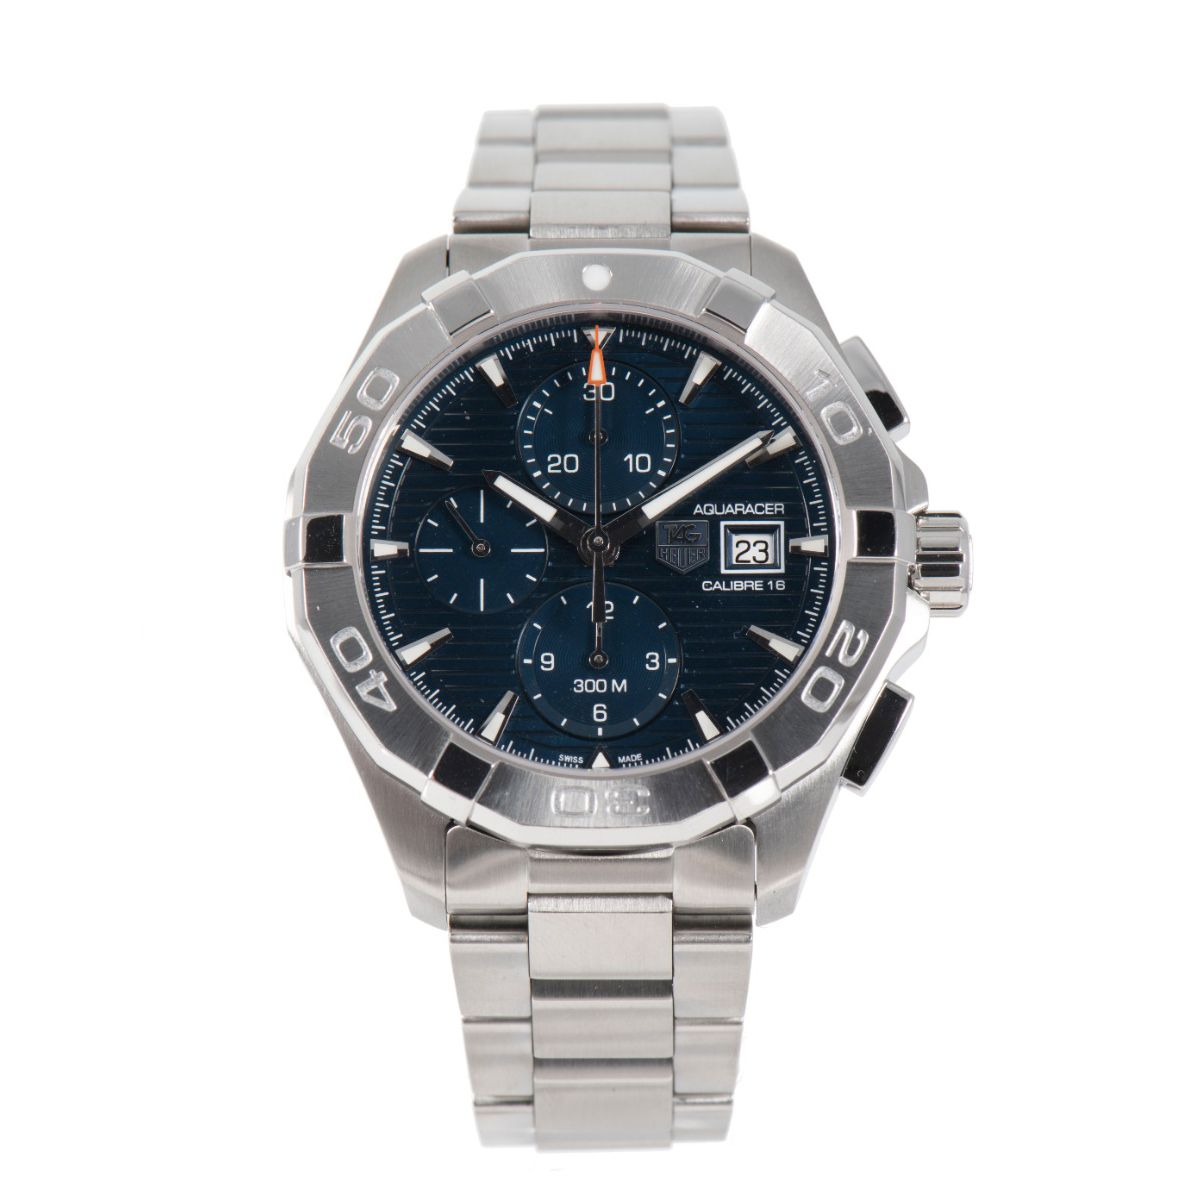 Tag Heuer Aquaracer Automatic Chronograph CAY2112 Blue Dial 44mm Mens Watch